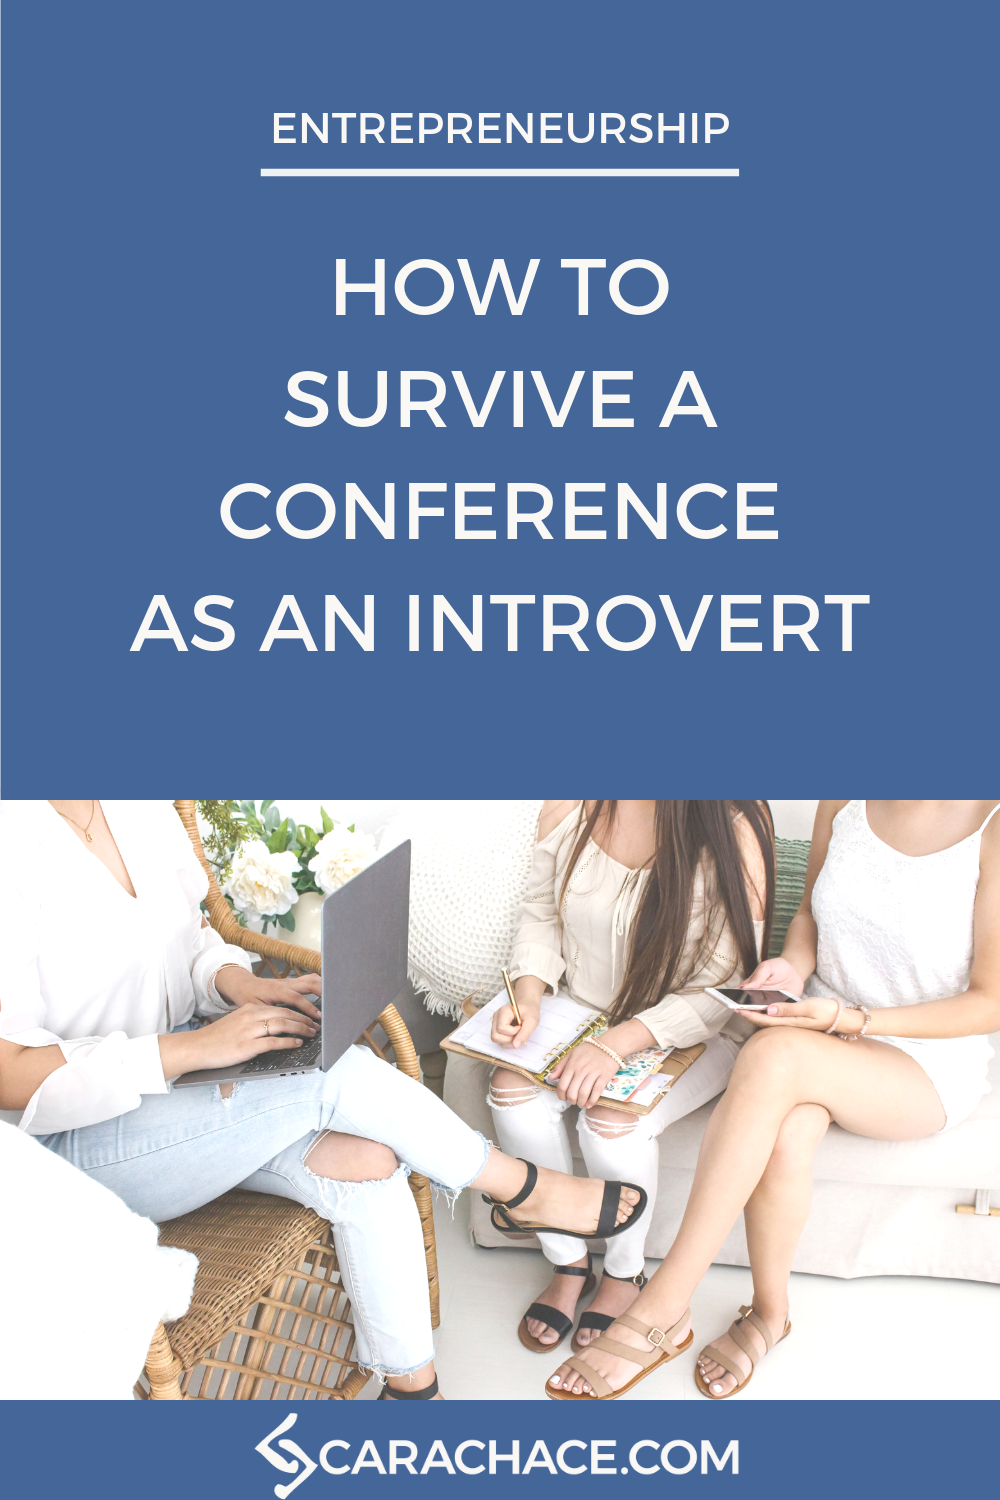 How To Survive a Conference as an Introvert Pin 1.png